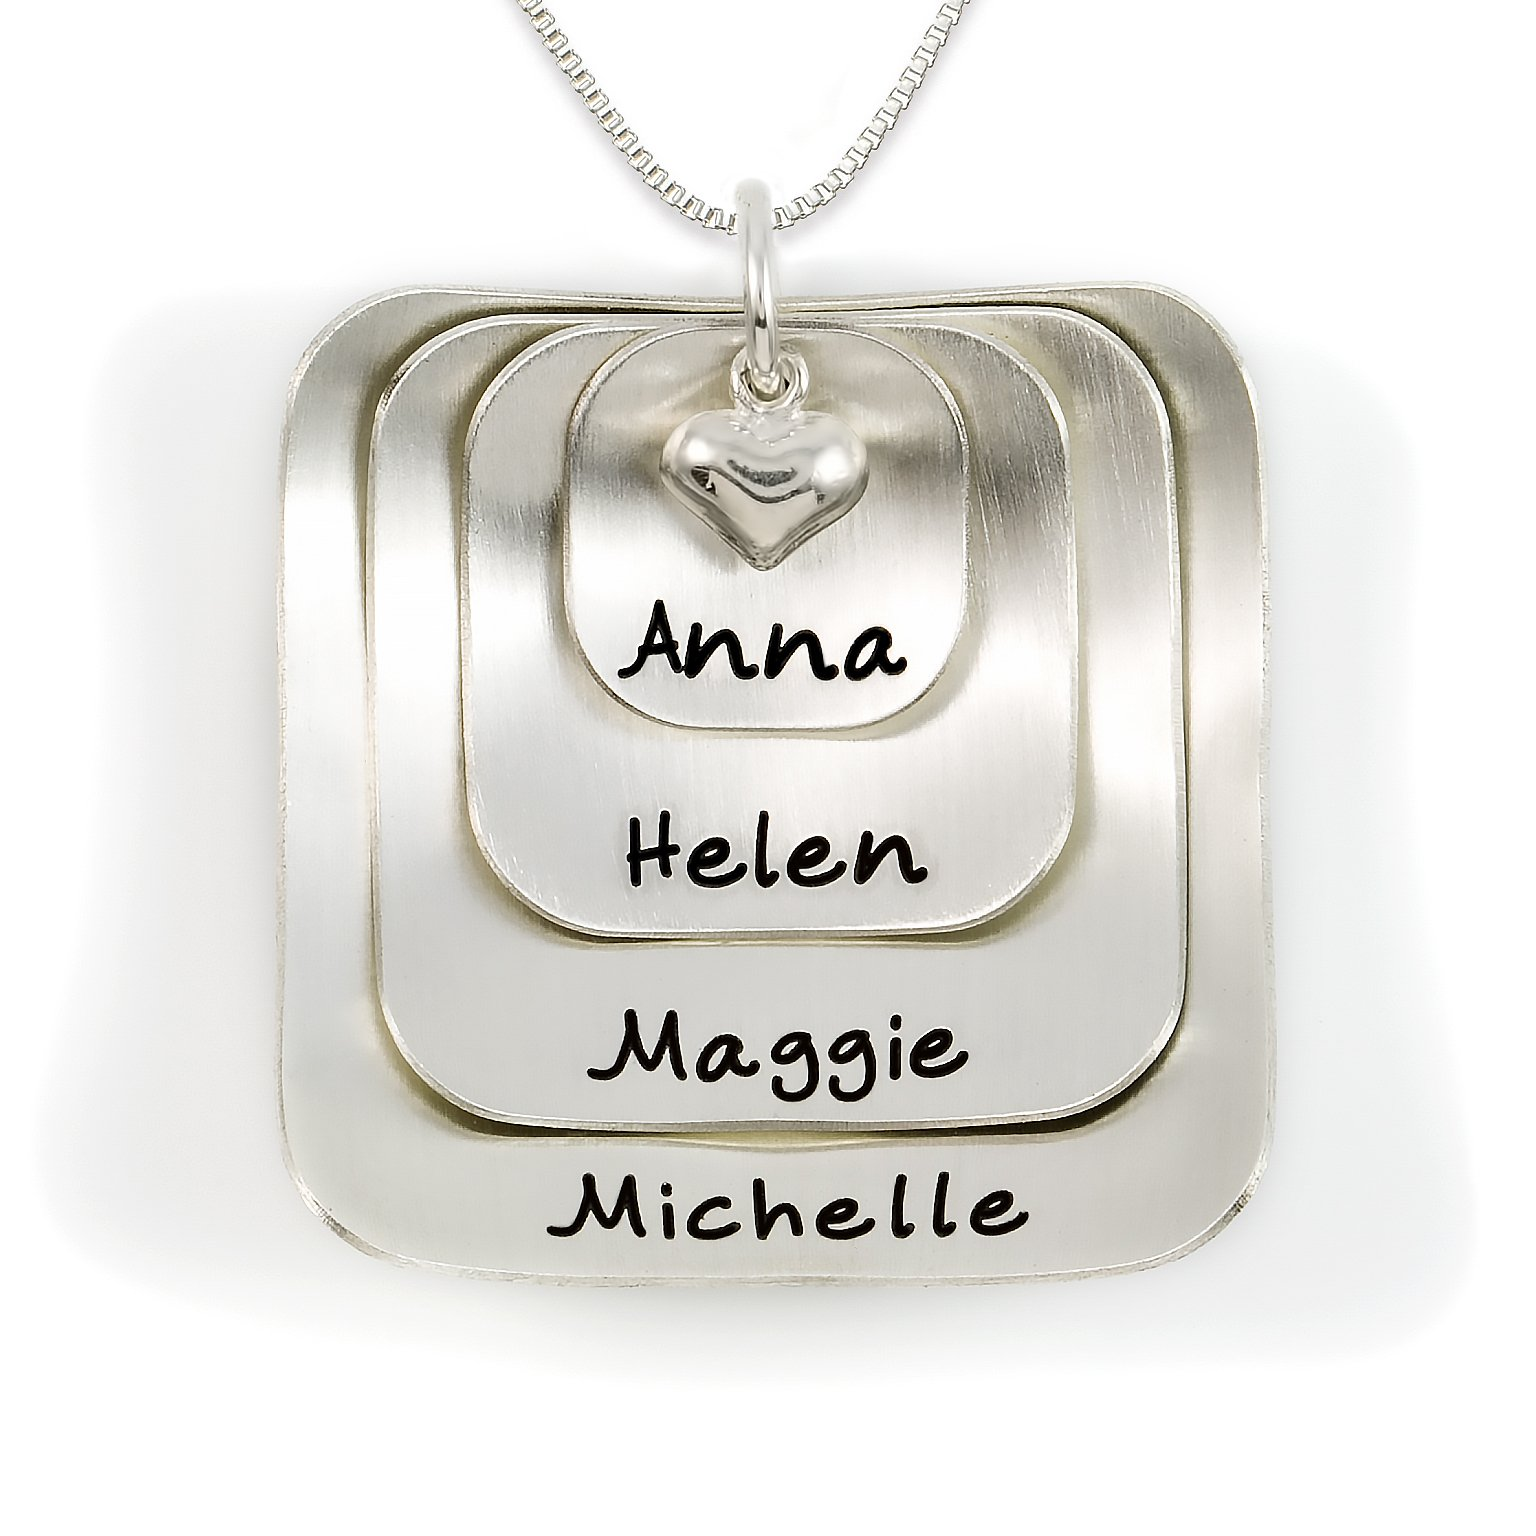 Square Lucky Four Sterling Silver Personalized Necklace Comes with 4 Customizable Charms and a Sterling Silver Heart Charm. Your Choice Of Chain. Gifts for Her, Mother, Grandmother, Wife